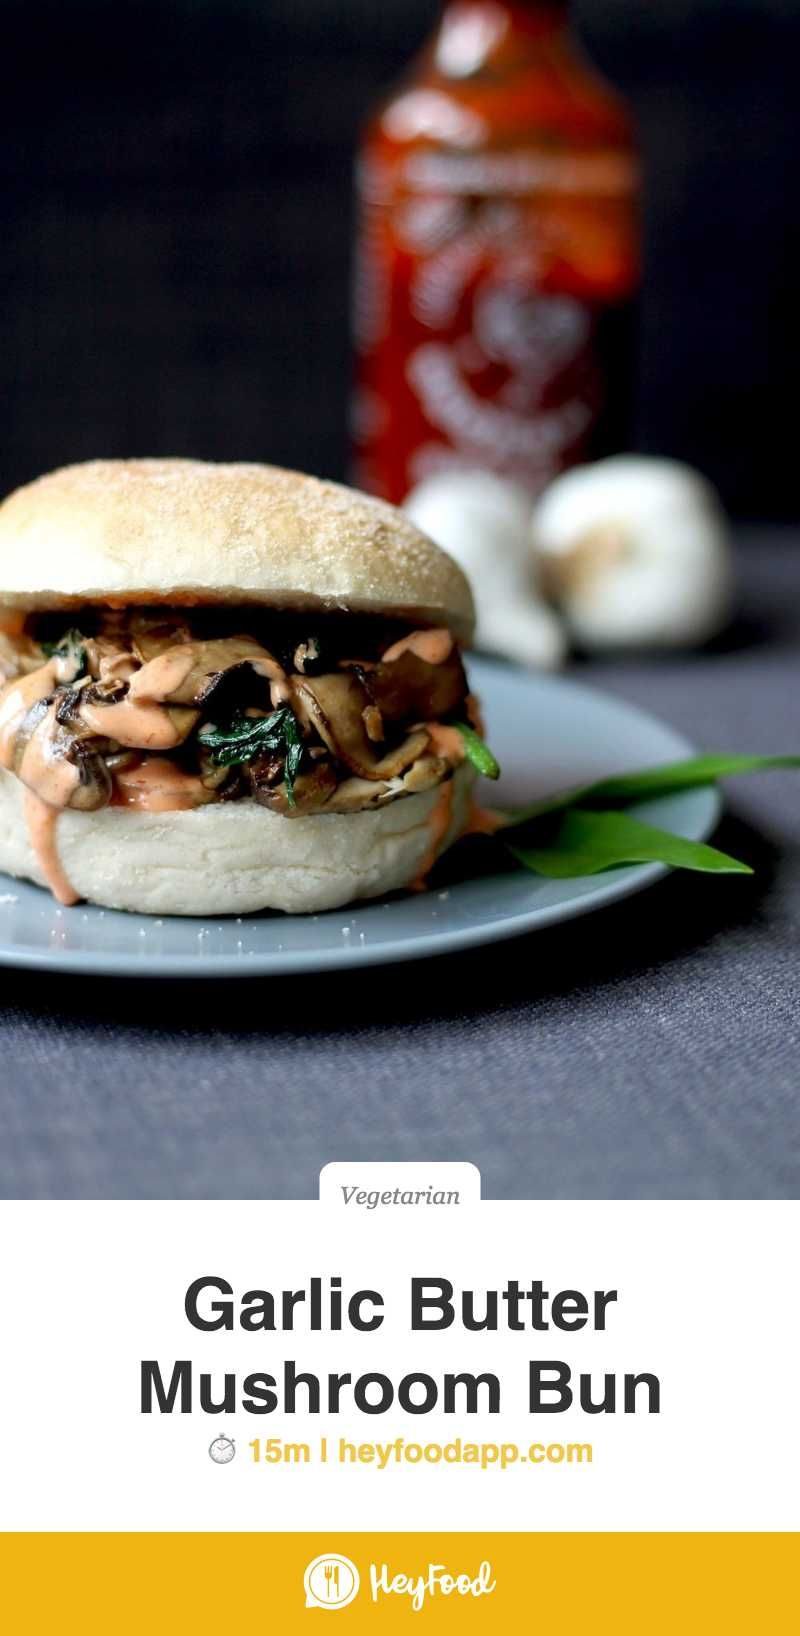 Garlic Butter Mushroom Bun  These garlic butter mushroom buns are great for every meal, be it breakfast, lunch or dinner, so make sure you make 'shroom for them on your table!    Recipe credit: Cake and Whisky